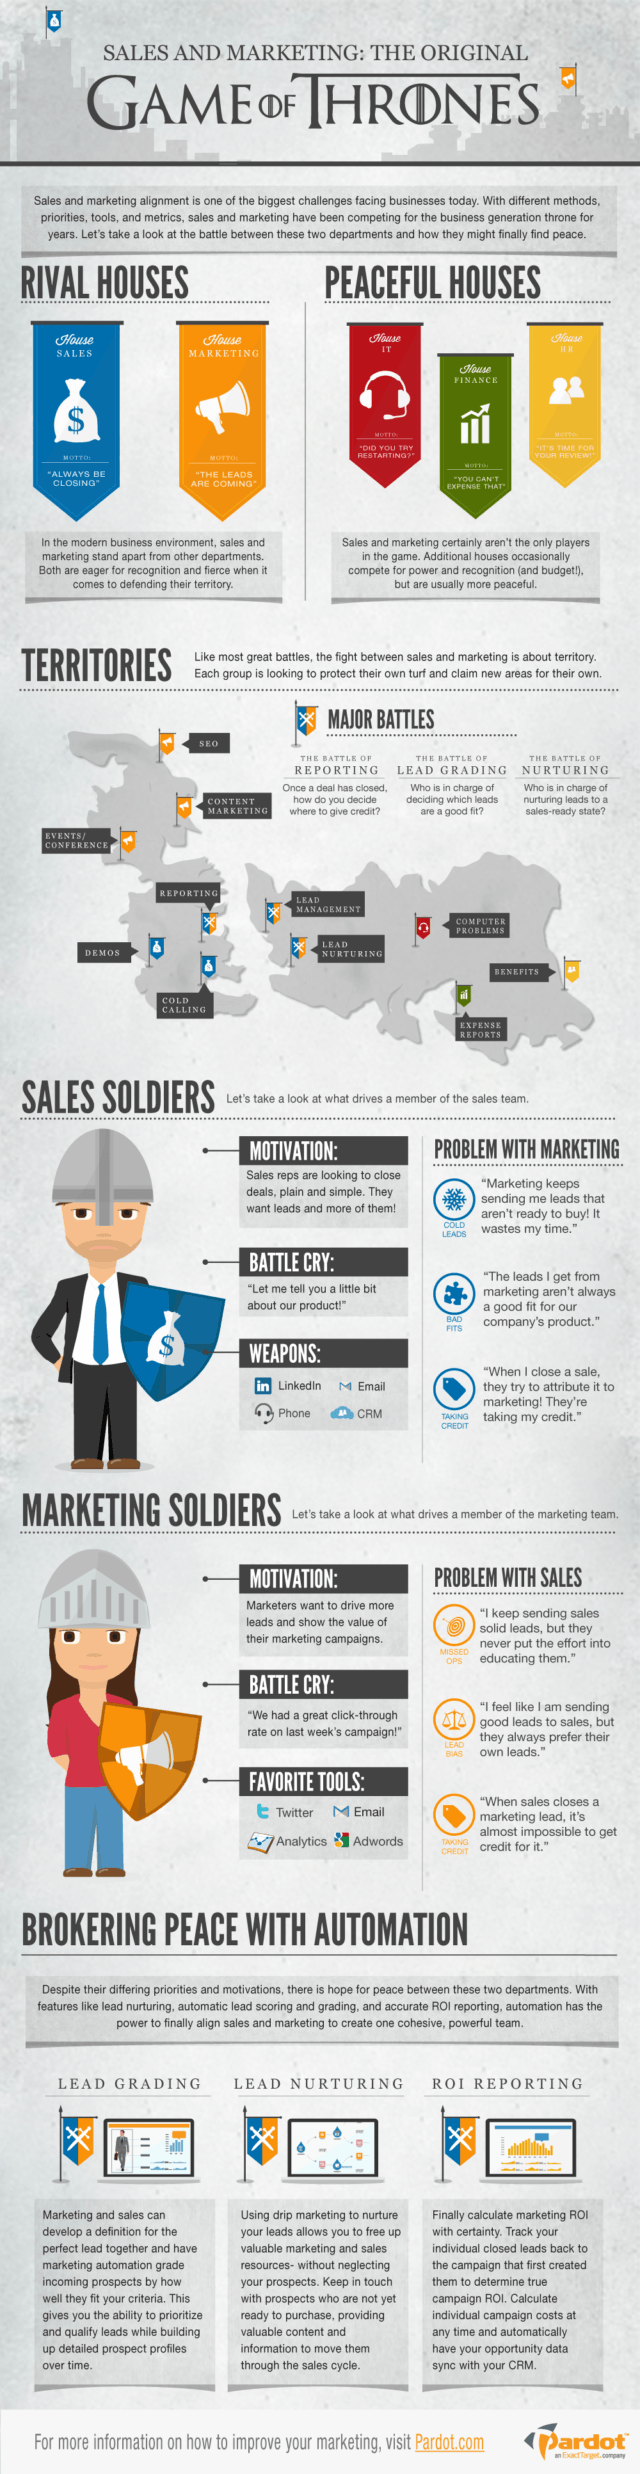 Sales versus Marketing and the Game of Thrones